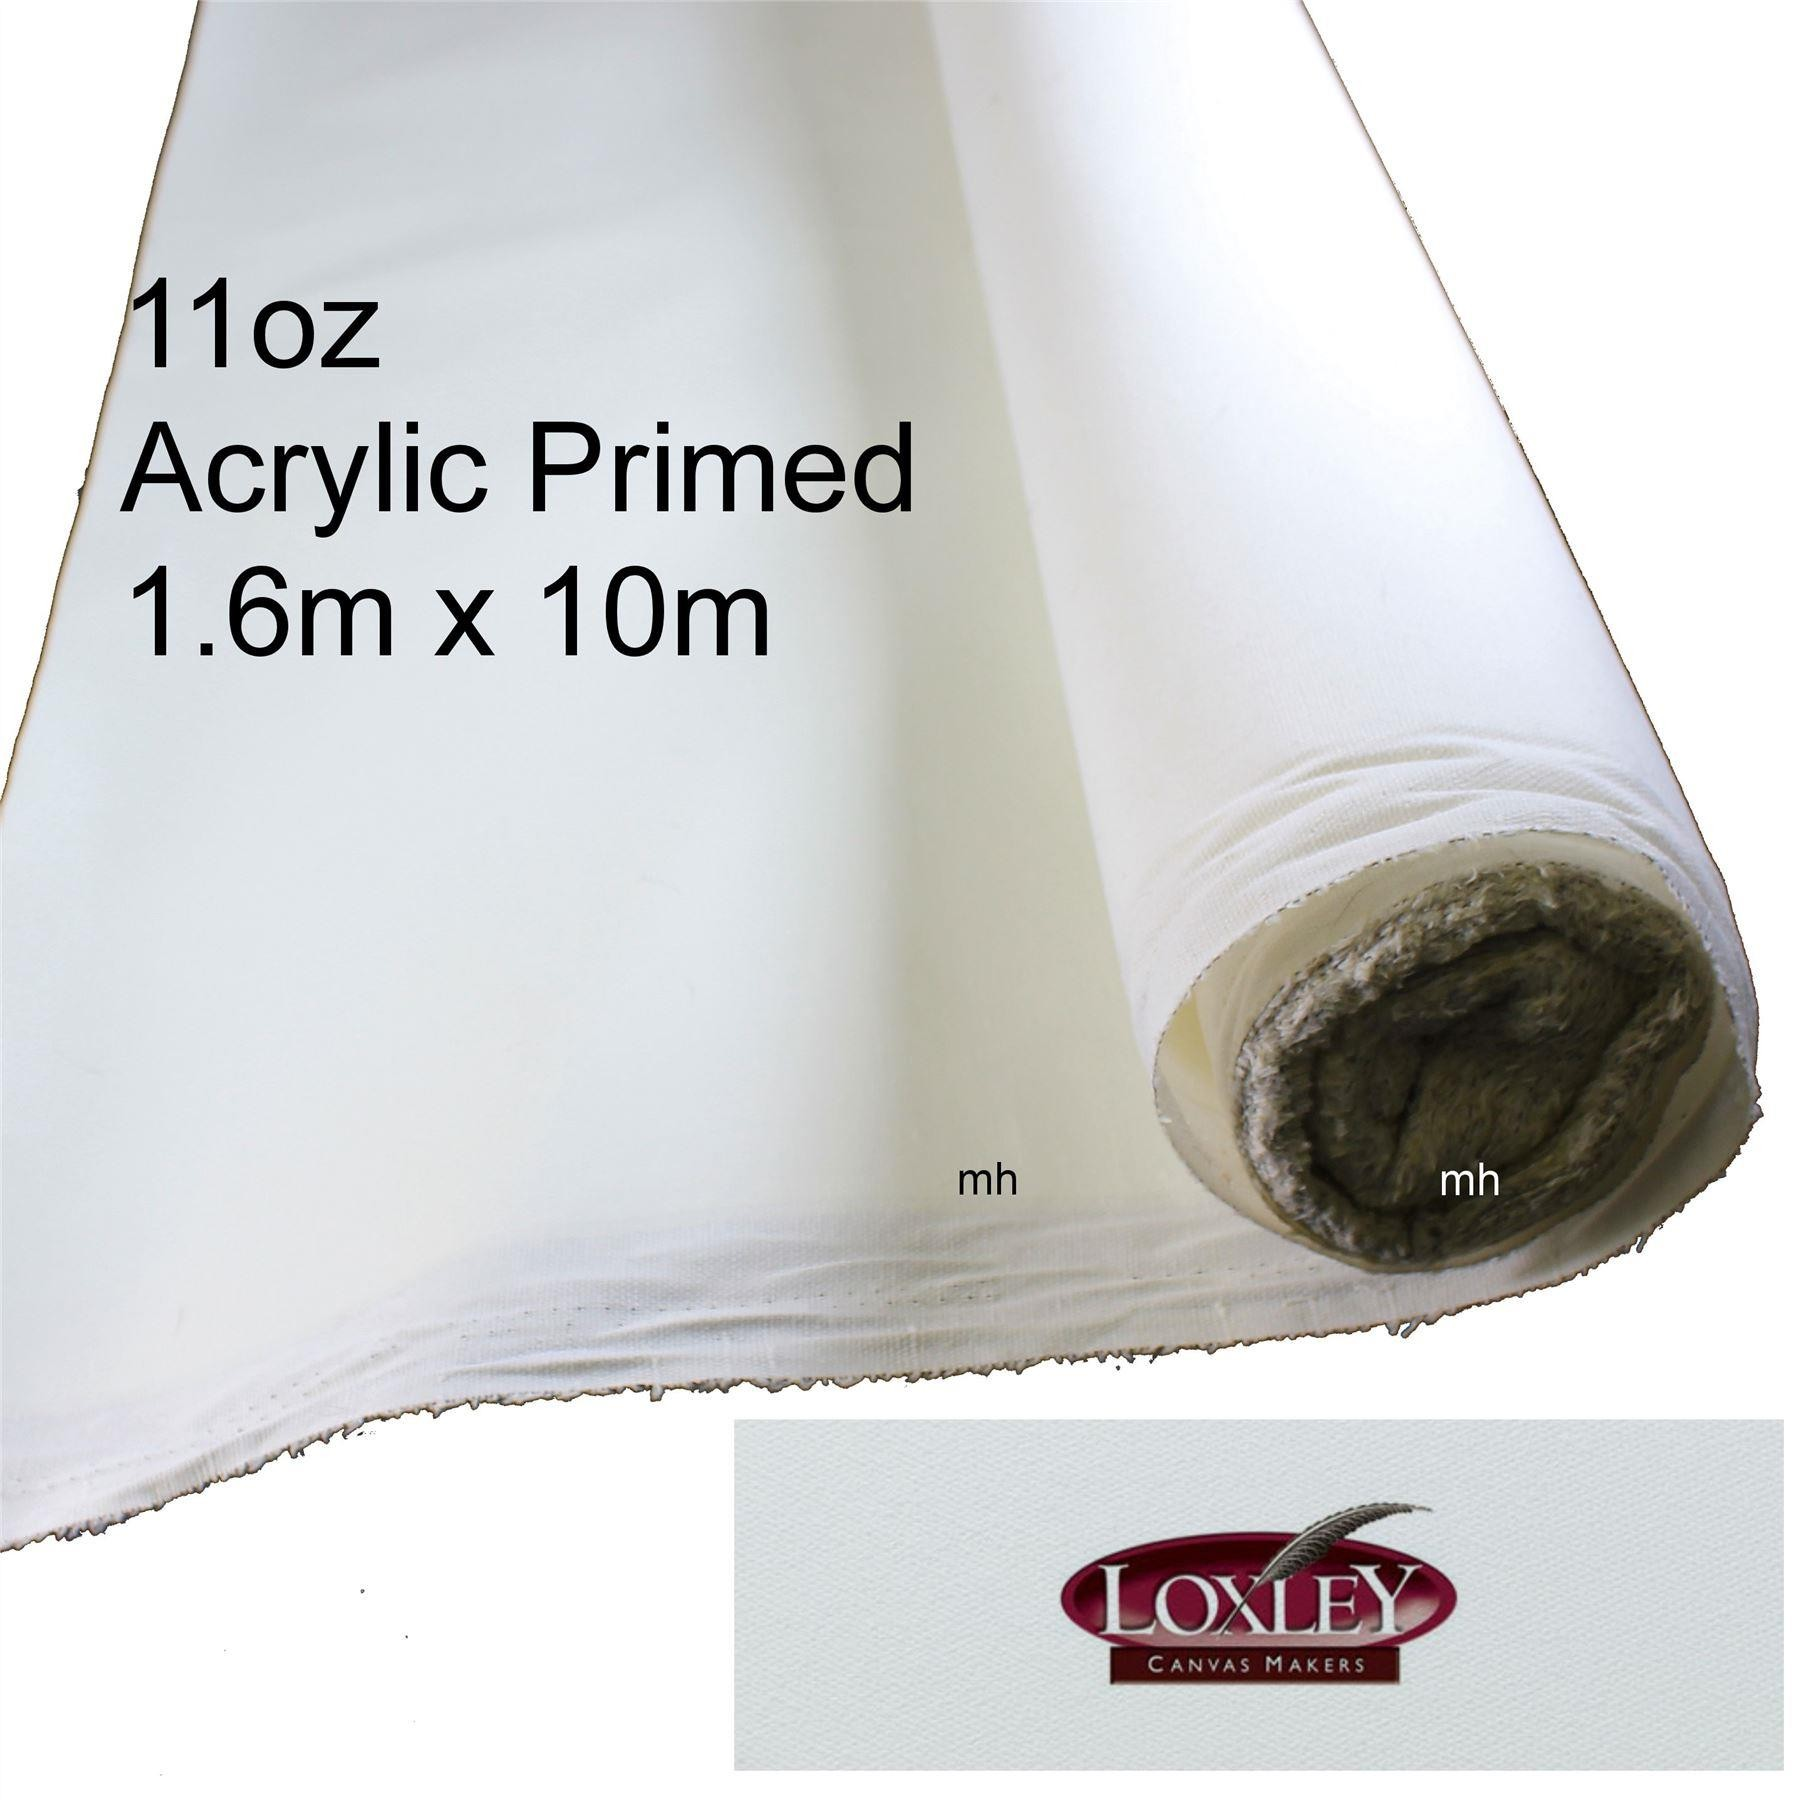 Loxley canvas roll primed 1.6m x 10m cotton